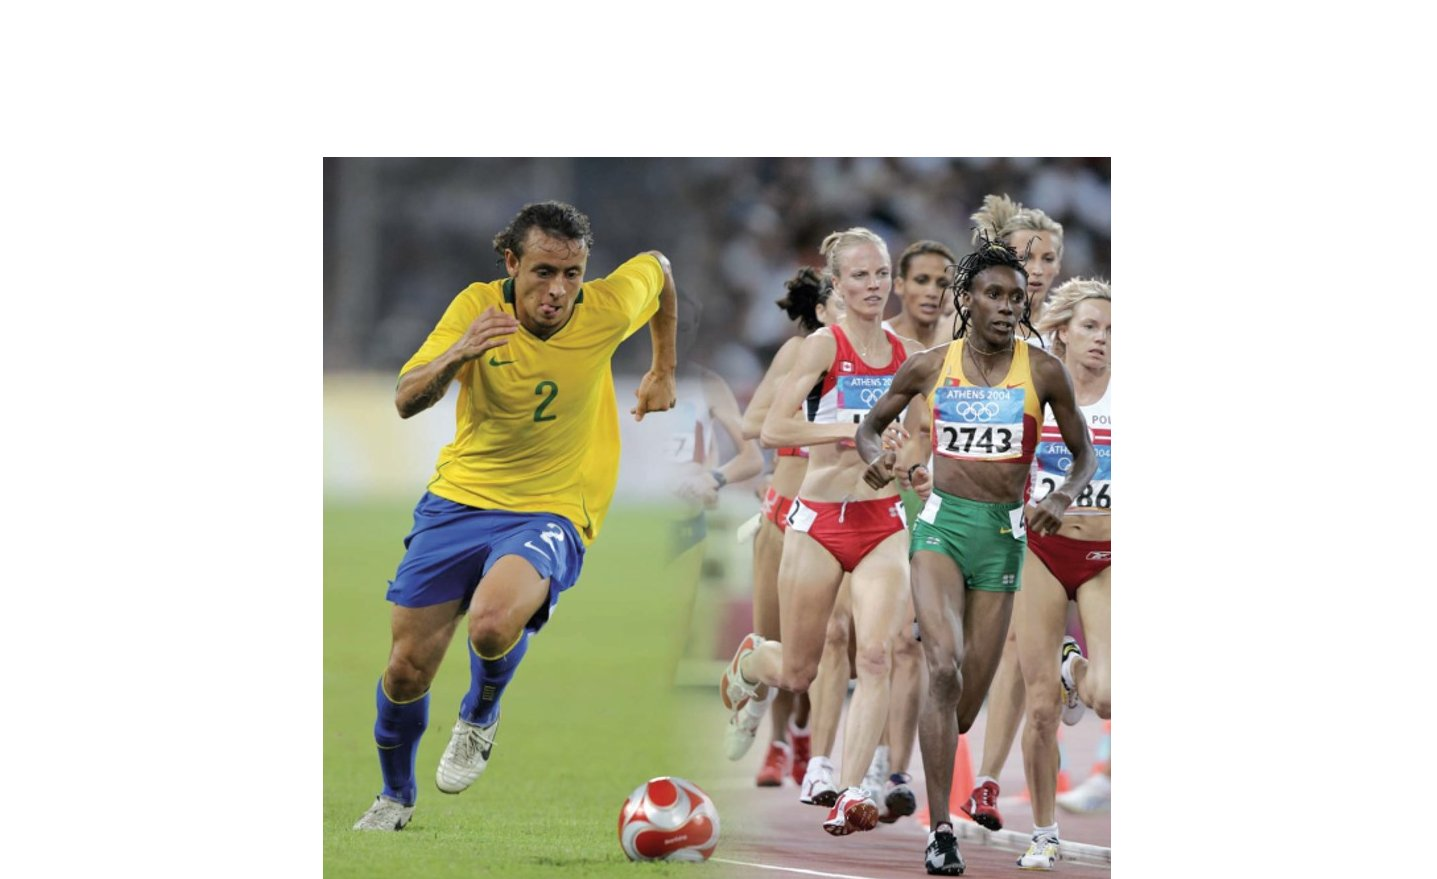 "<a style=""color: #fff;"" target=""_blank"" href=""http://www.ioc-cardiologycourse.org/"">IOC Course on Cardiovascular Evaluation of Olympic Athletes</a>"